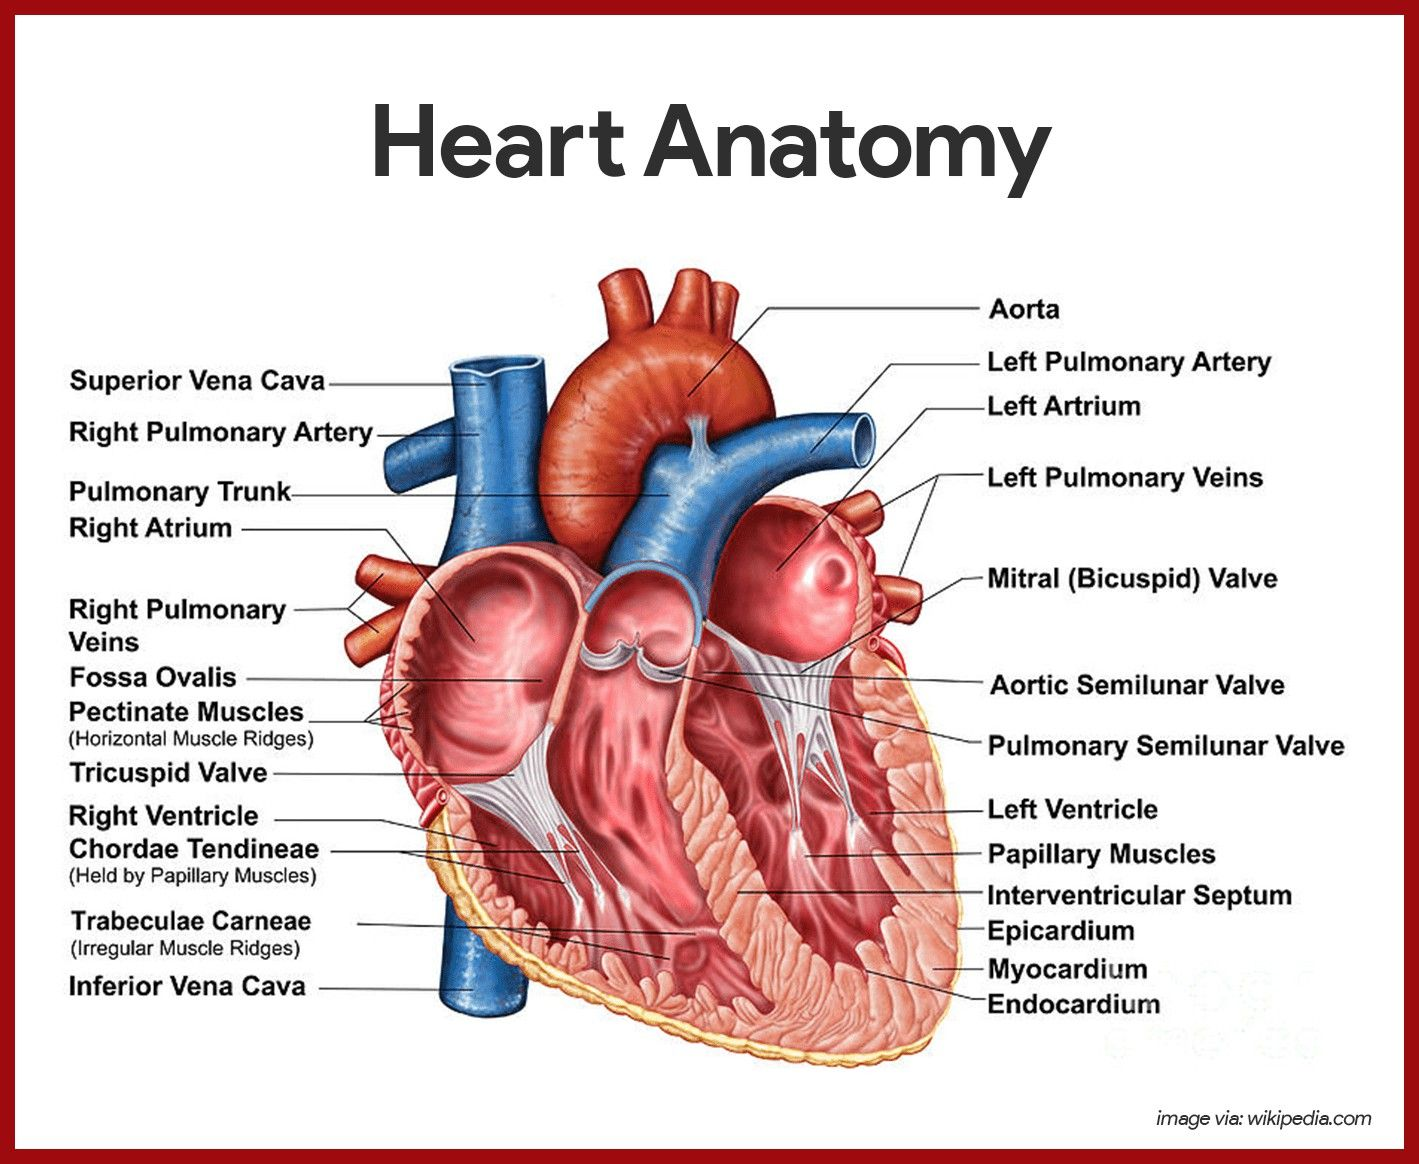 Gross Anatomy Of The Human Heart New Cardiovascular System Anatomy